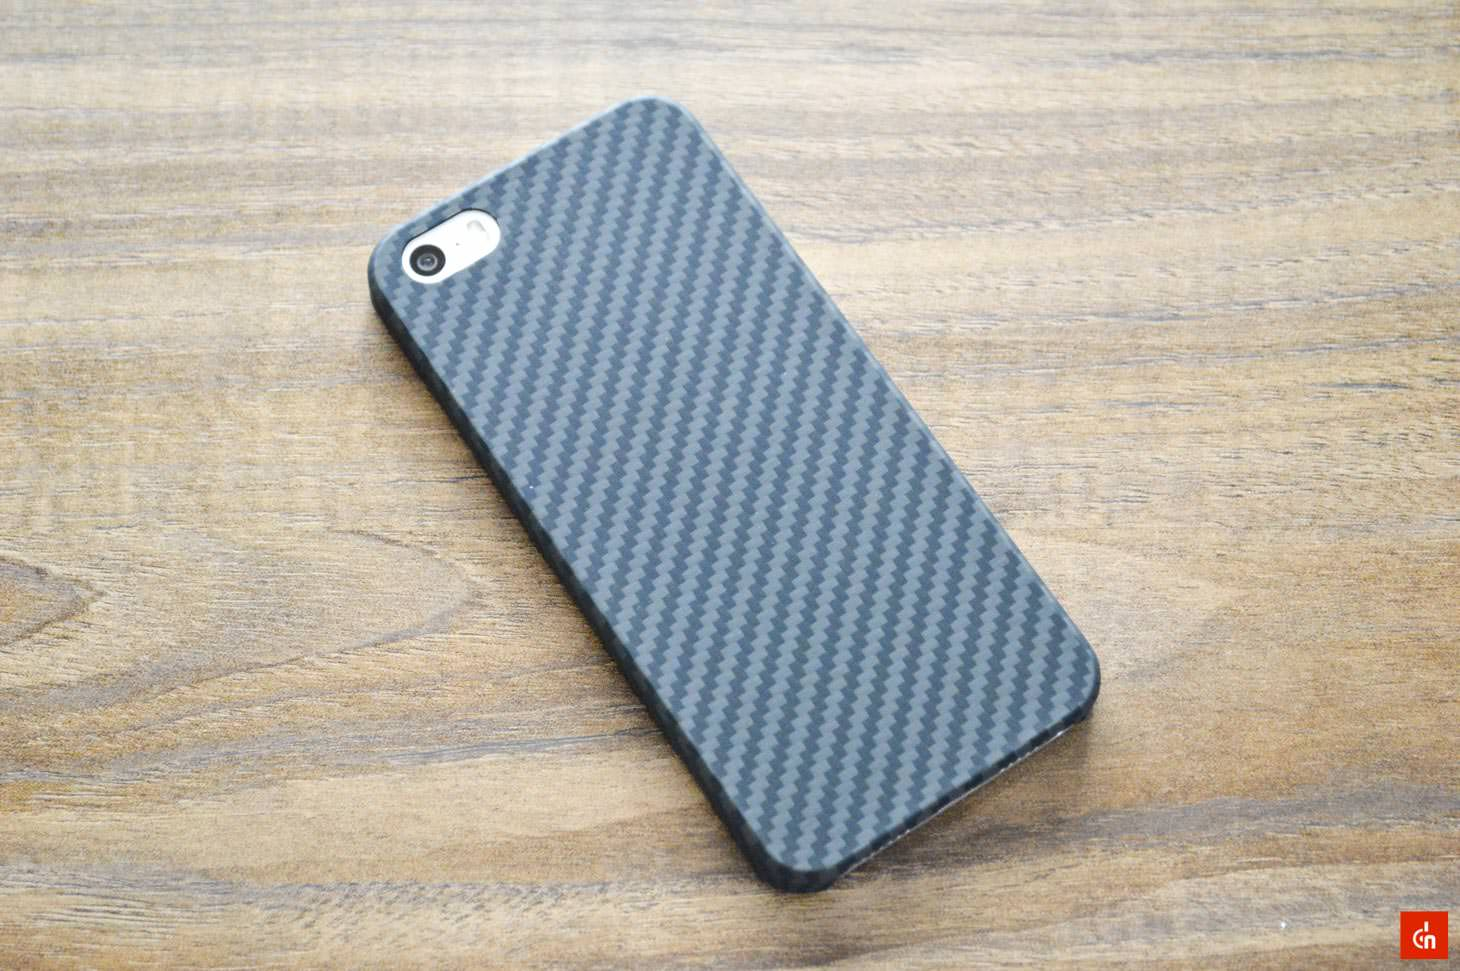 017_20160717_pitaka-carbon-iphonese-case